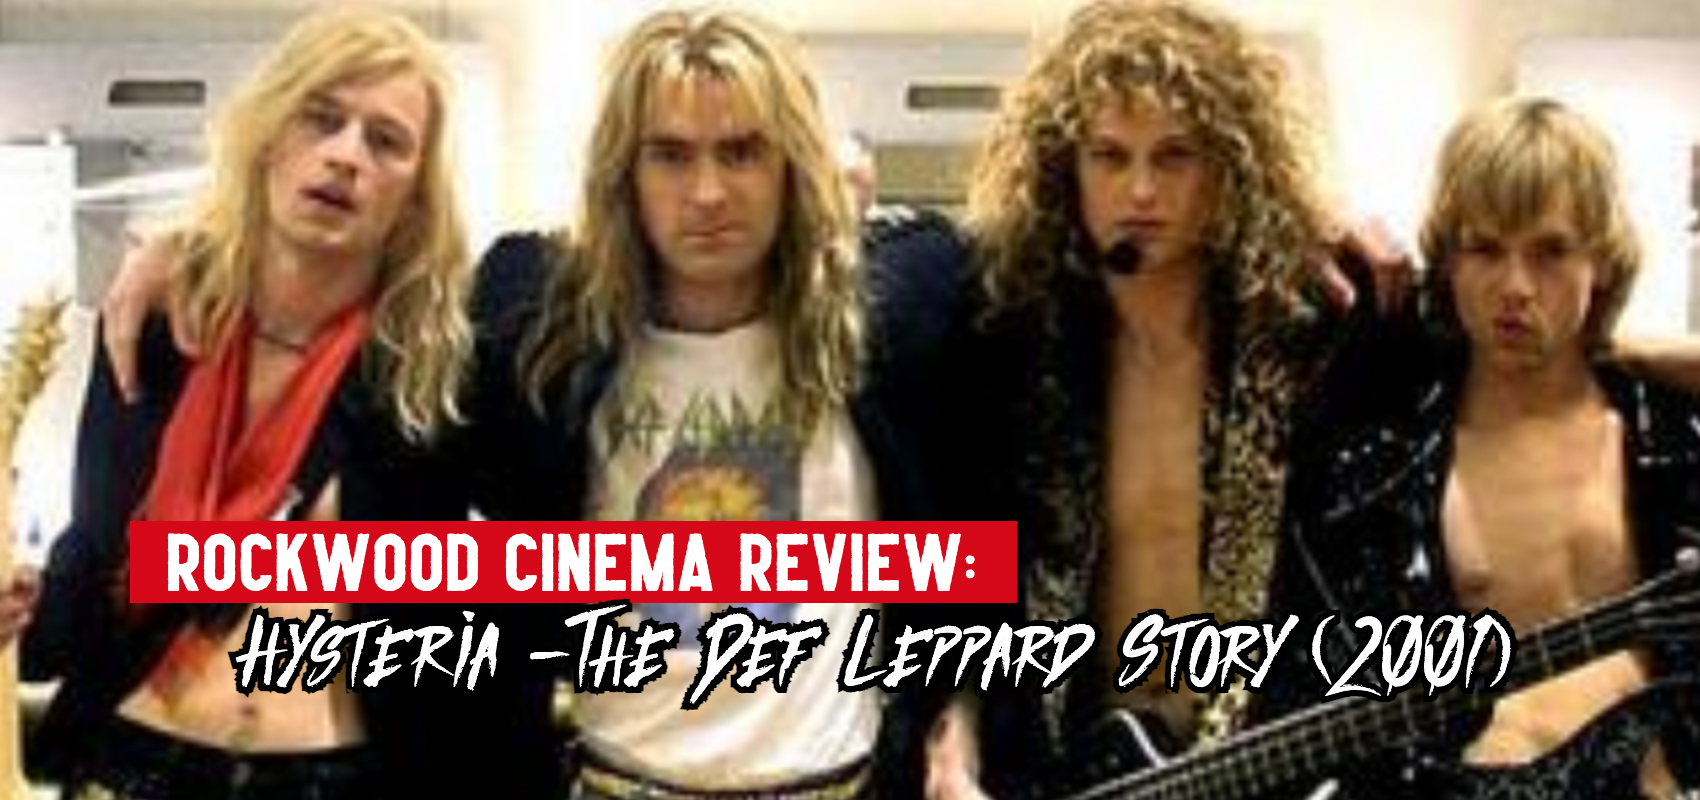 Actors playing the band Def Leppard pose for a backstage photo from the movie.